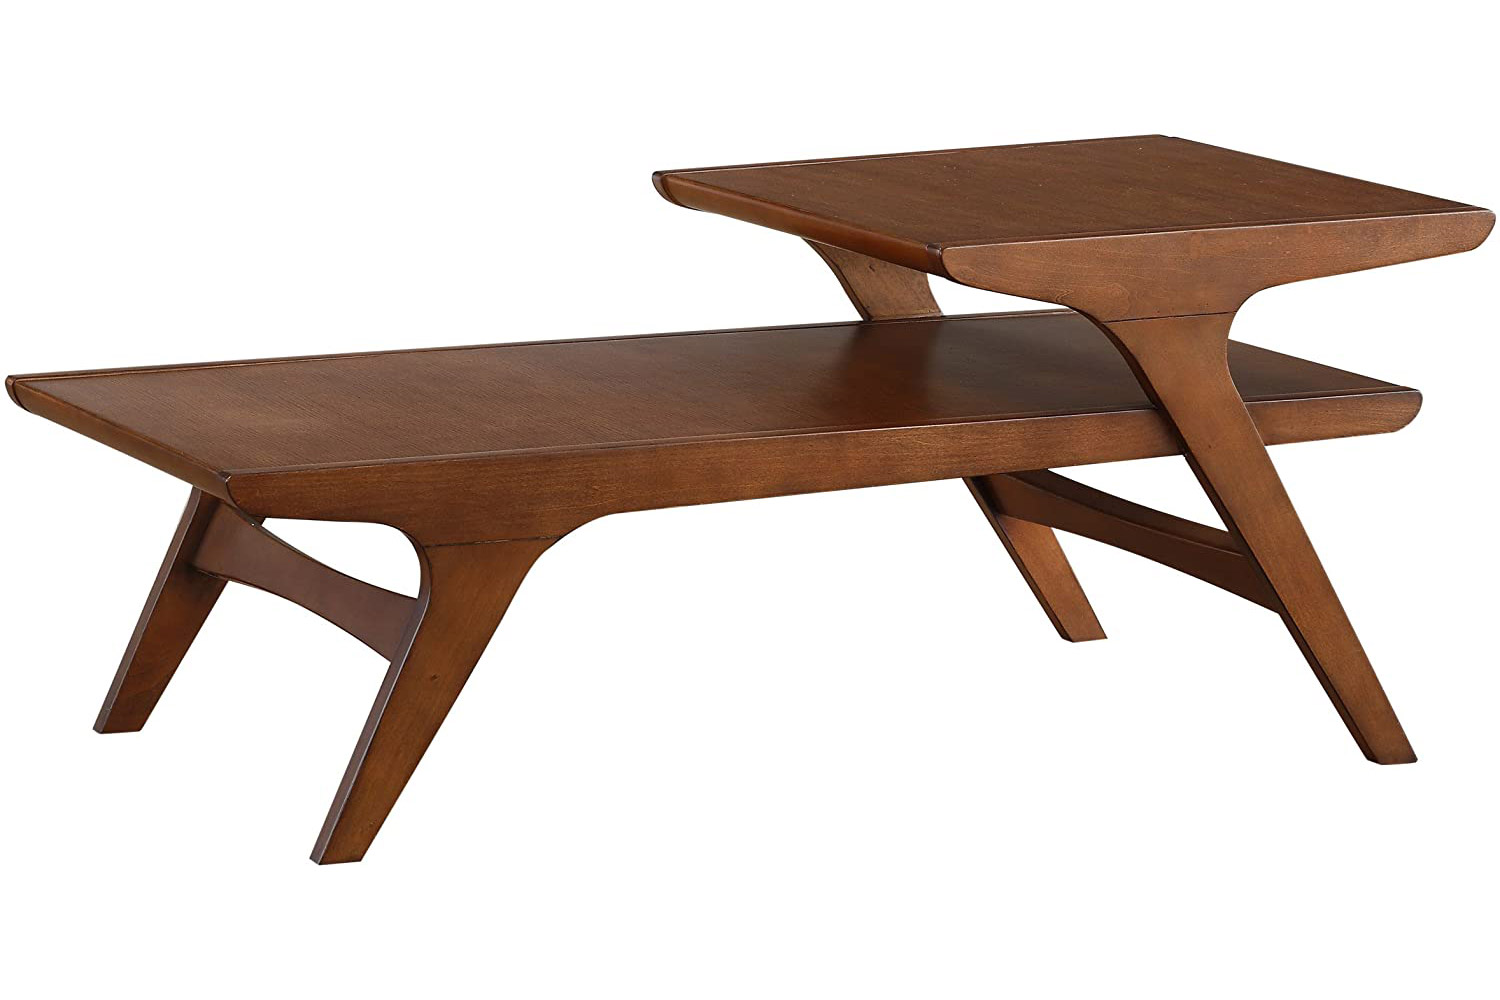 Homelegance Saluki Mid-Century Two-Tier Cocktail/Coffee Table, Cherry